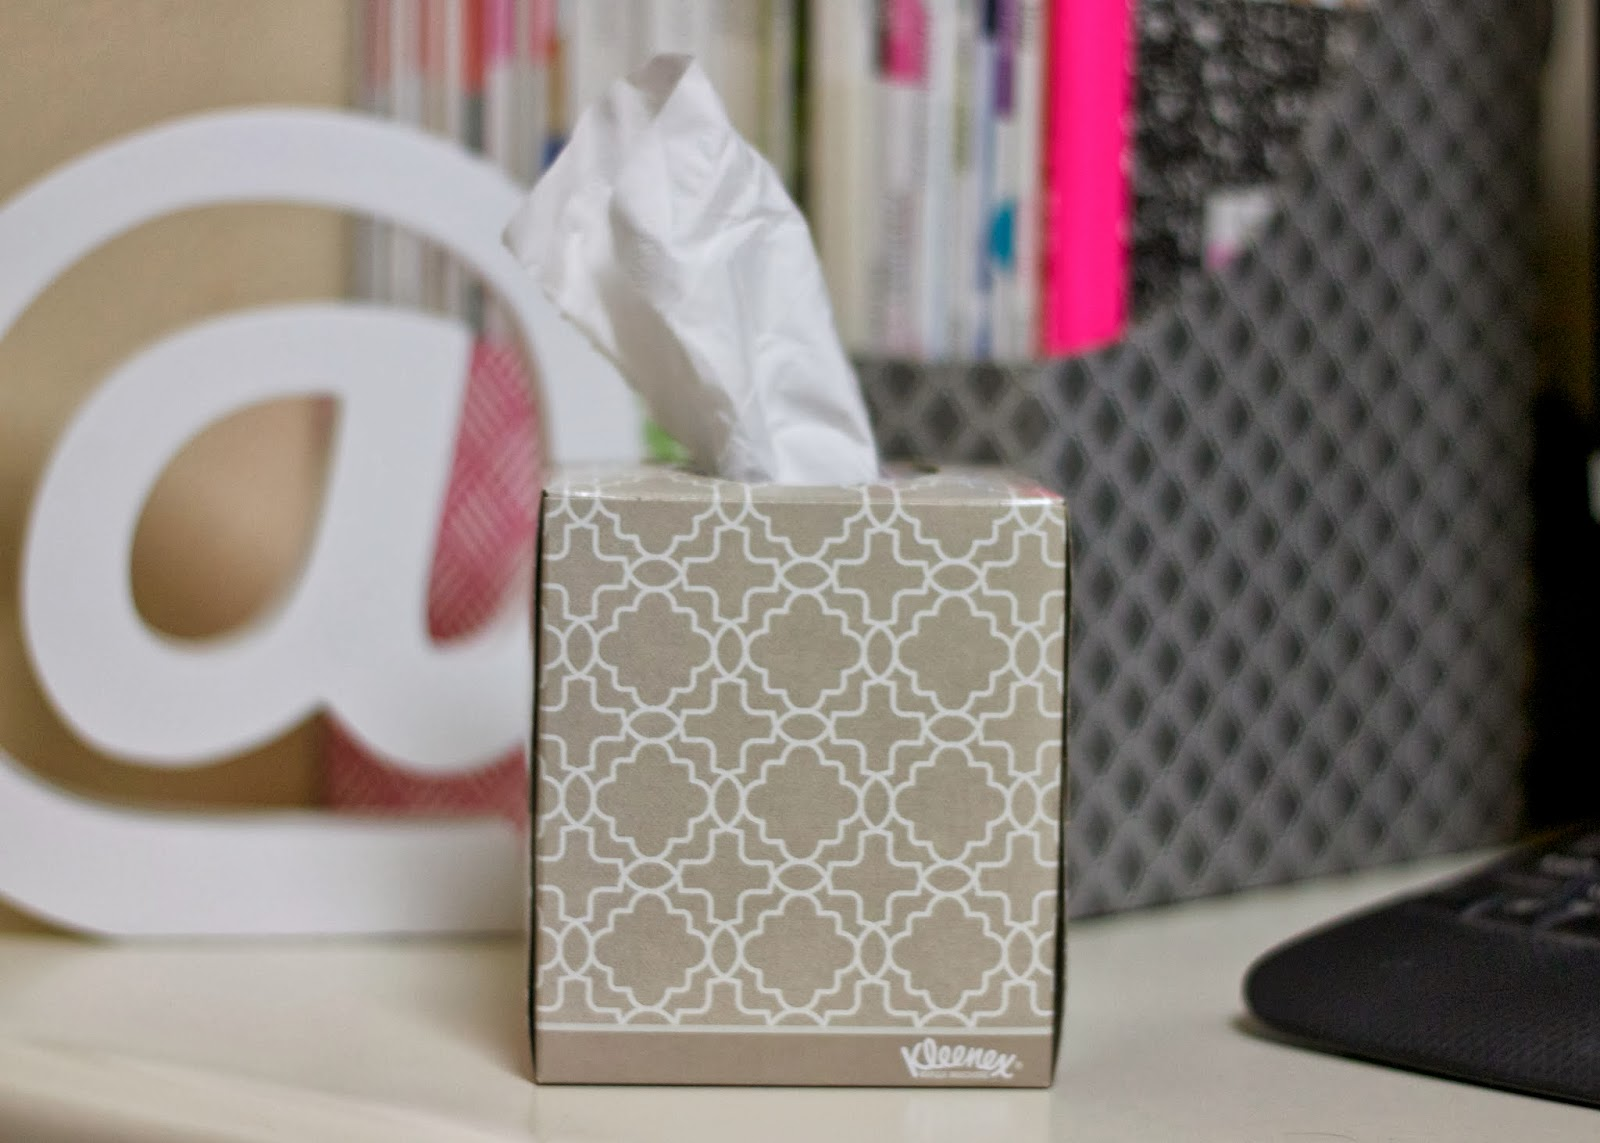 Kleenex to decorate desk area, Kleenex style, Kleenex design, How to design Kleenex box, Kleenex style studio, What is Kleenex style, Find your style, Tissue style, Style tissue, Decorative tissue box, Decorative tissue